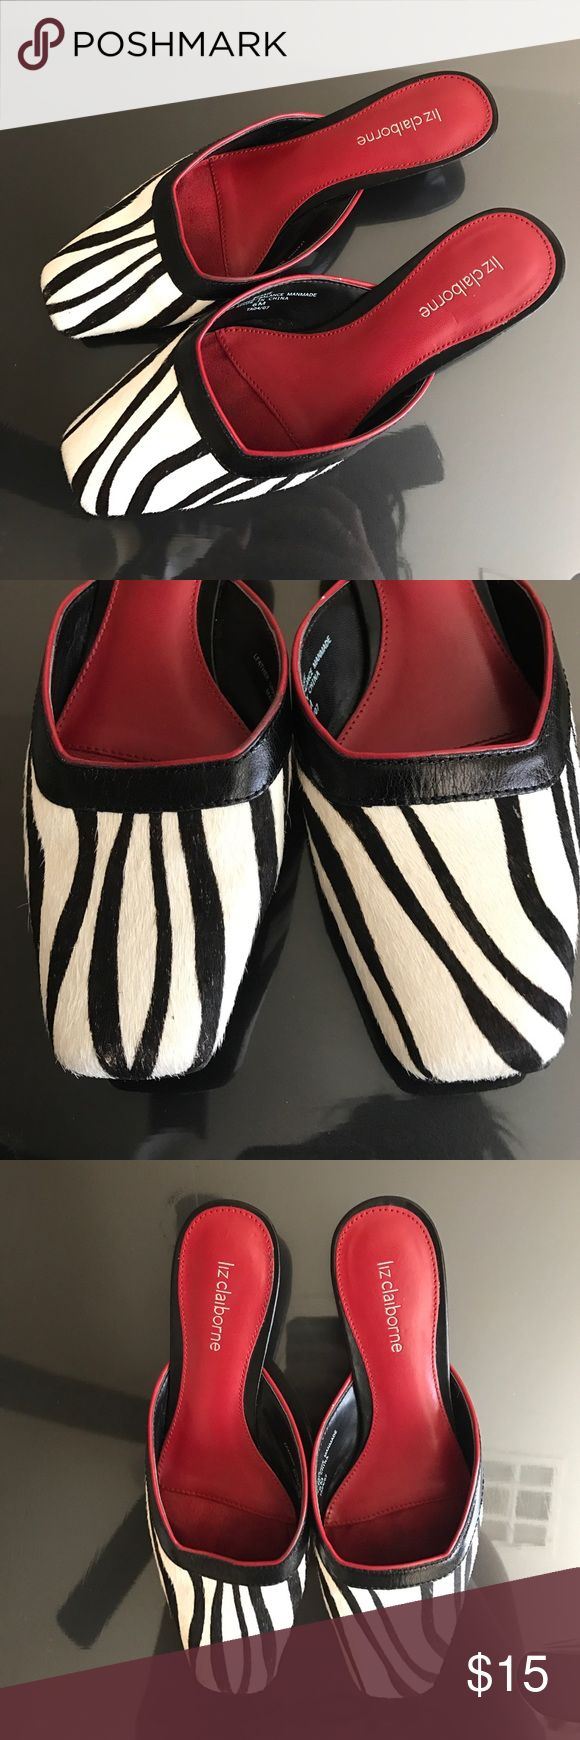 "EUC Liz Claiborne zebra shoe with tiny heel Liz Claiborne zebra 1"" Heel with red trim & interior. Used 2x. Super cute & comfortable. Again, I wear scrubs to work and I have no use for these! So looking for a new lovable home. (: make me an offer Liz Claiborne Shoes Heels"